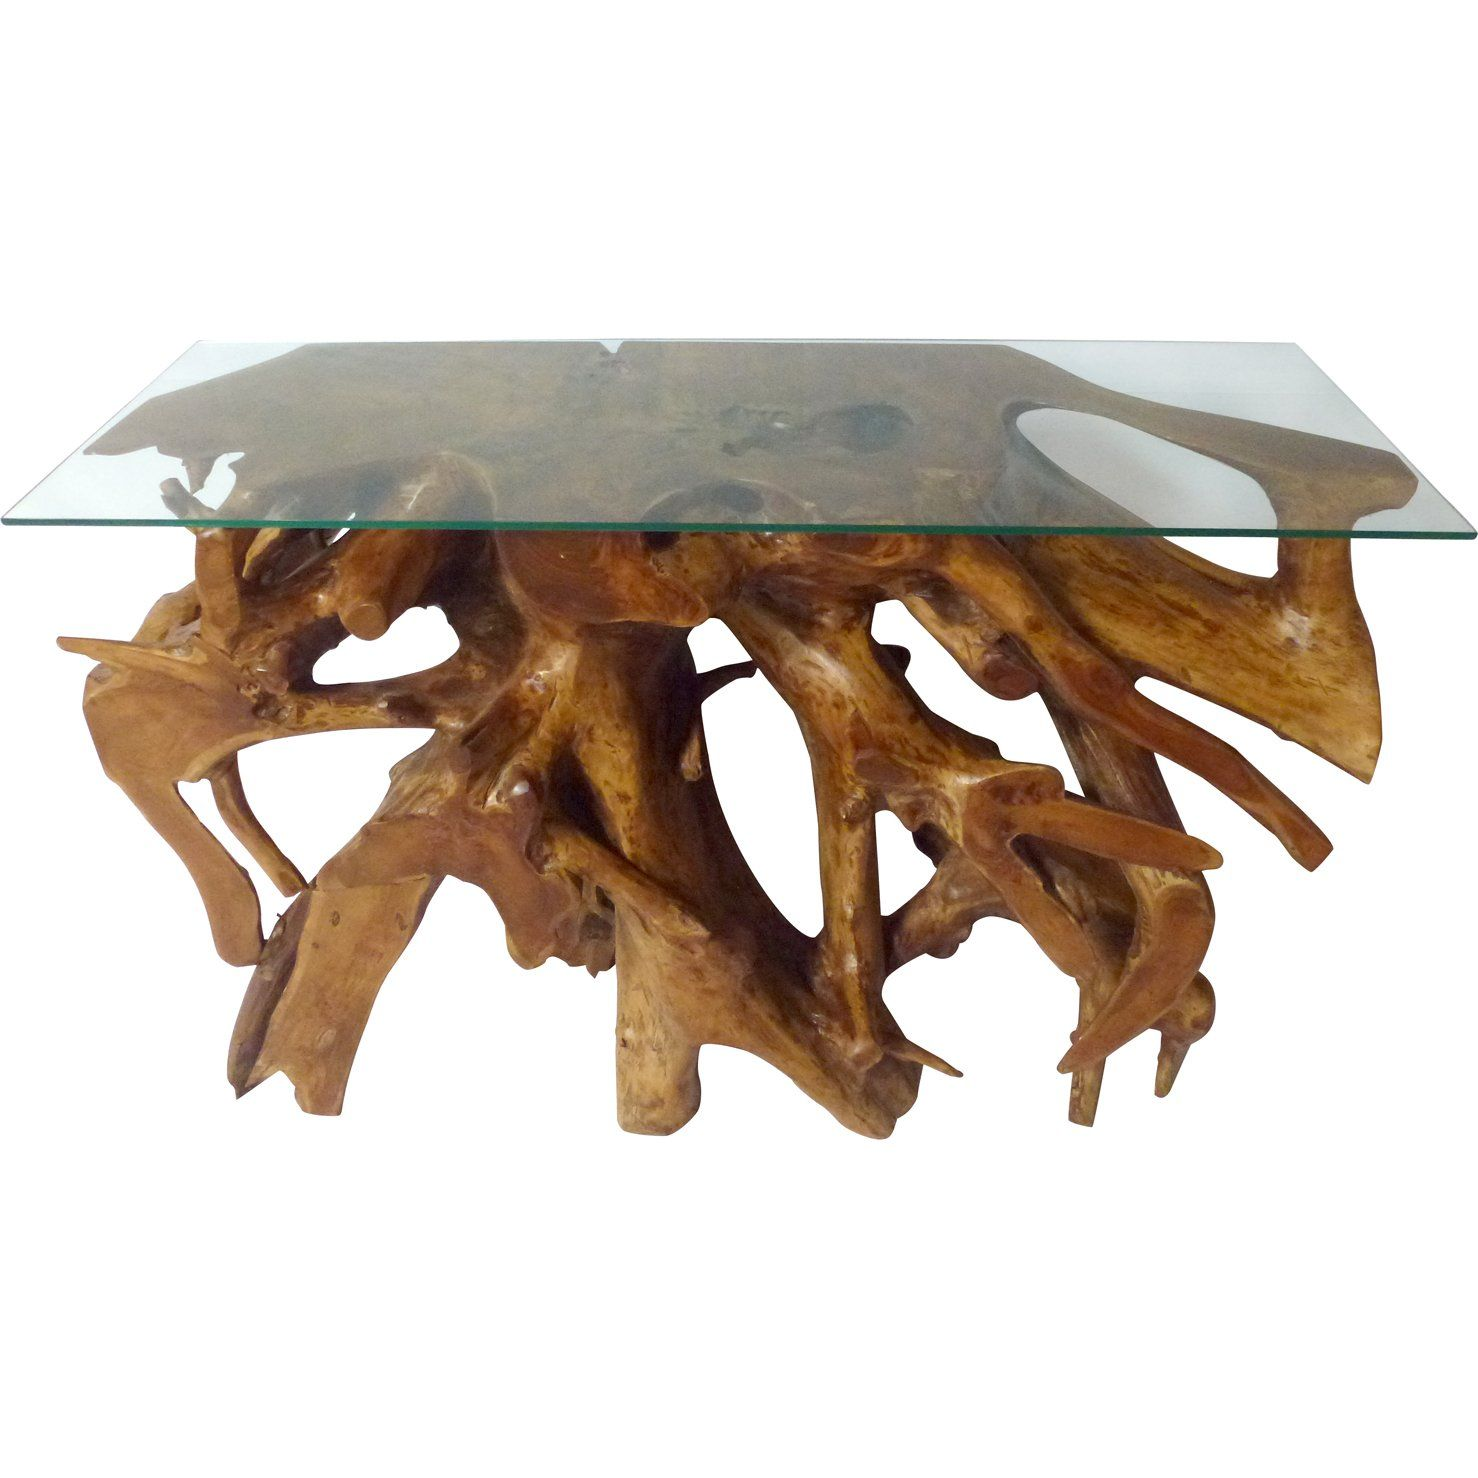 teak root console table made chic learn more visiting uttermost rubati accent the link tiffany shades rustic wood coffee tables edmonton small cabinet dining room bench tennis